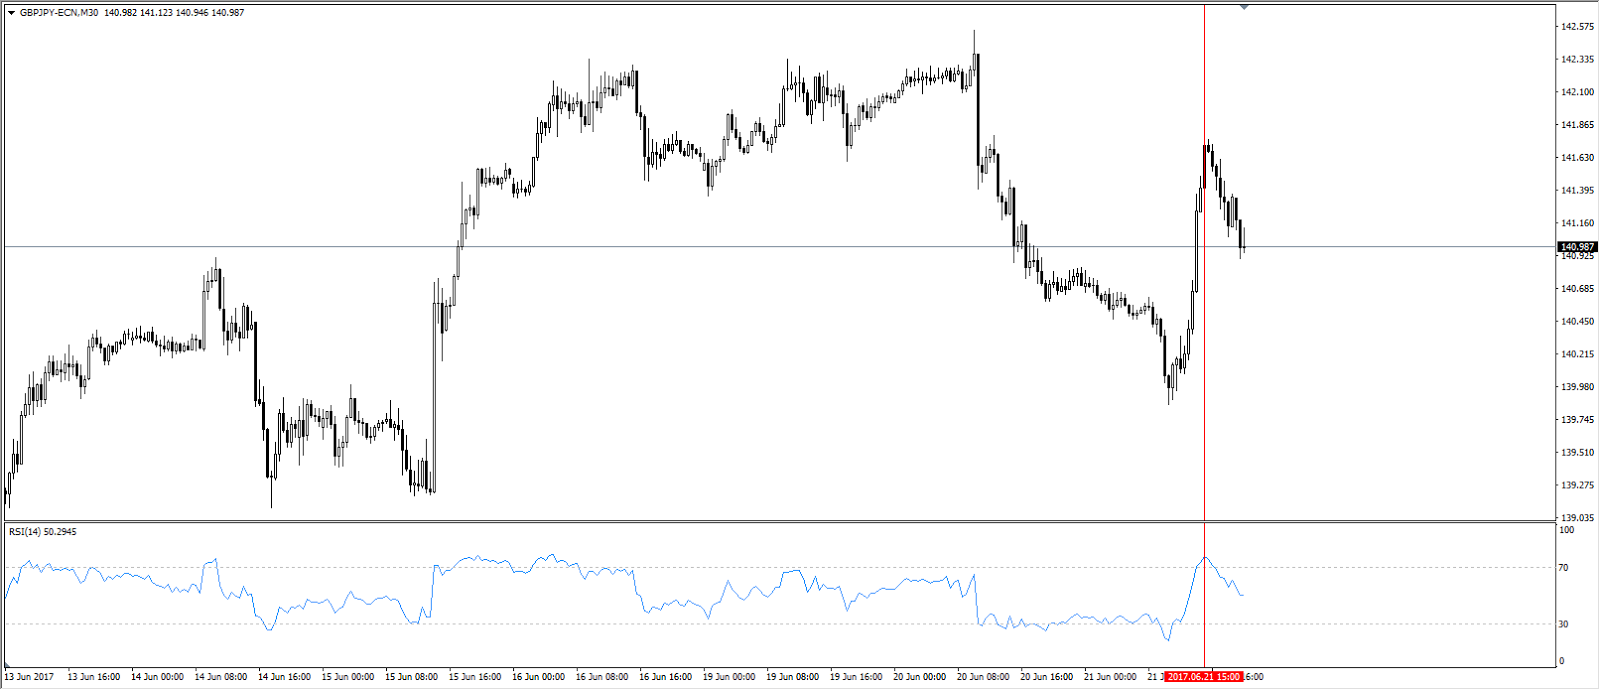 GBP/JPY M30, Admiral Markets MT4, June 21 20:00 Platform Time